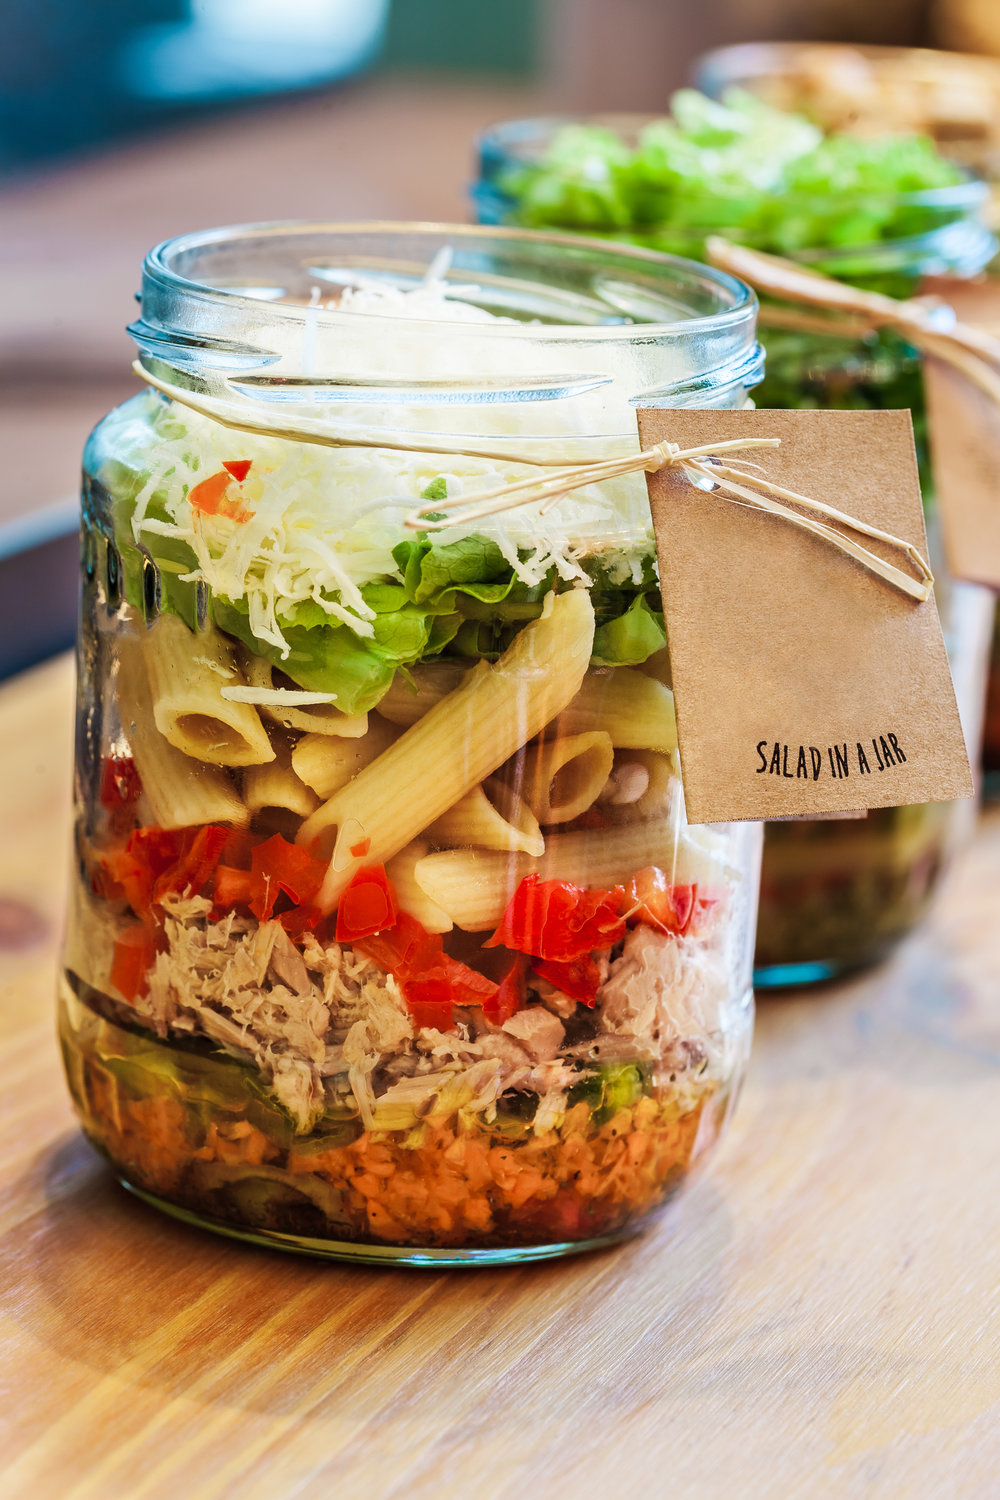 Online Personal Trainer Lunch Recipes - Tuna & Pasta Lunch Jar.jpg